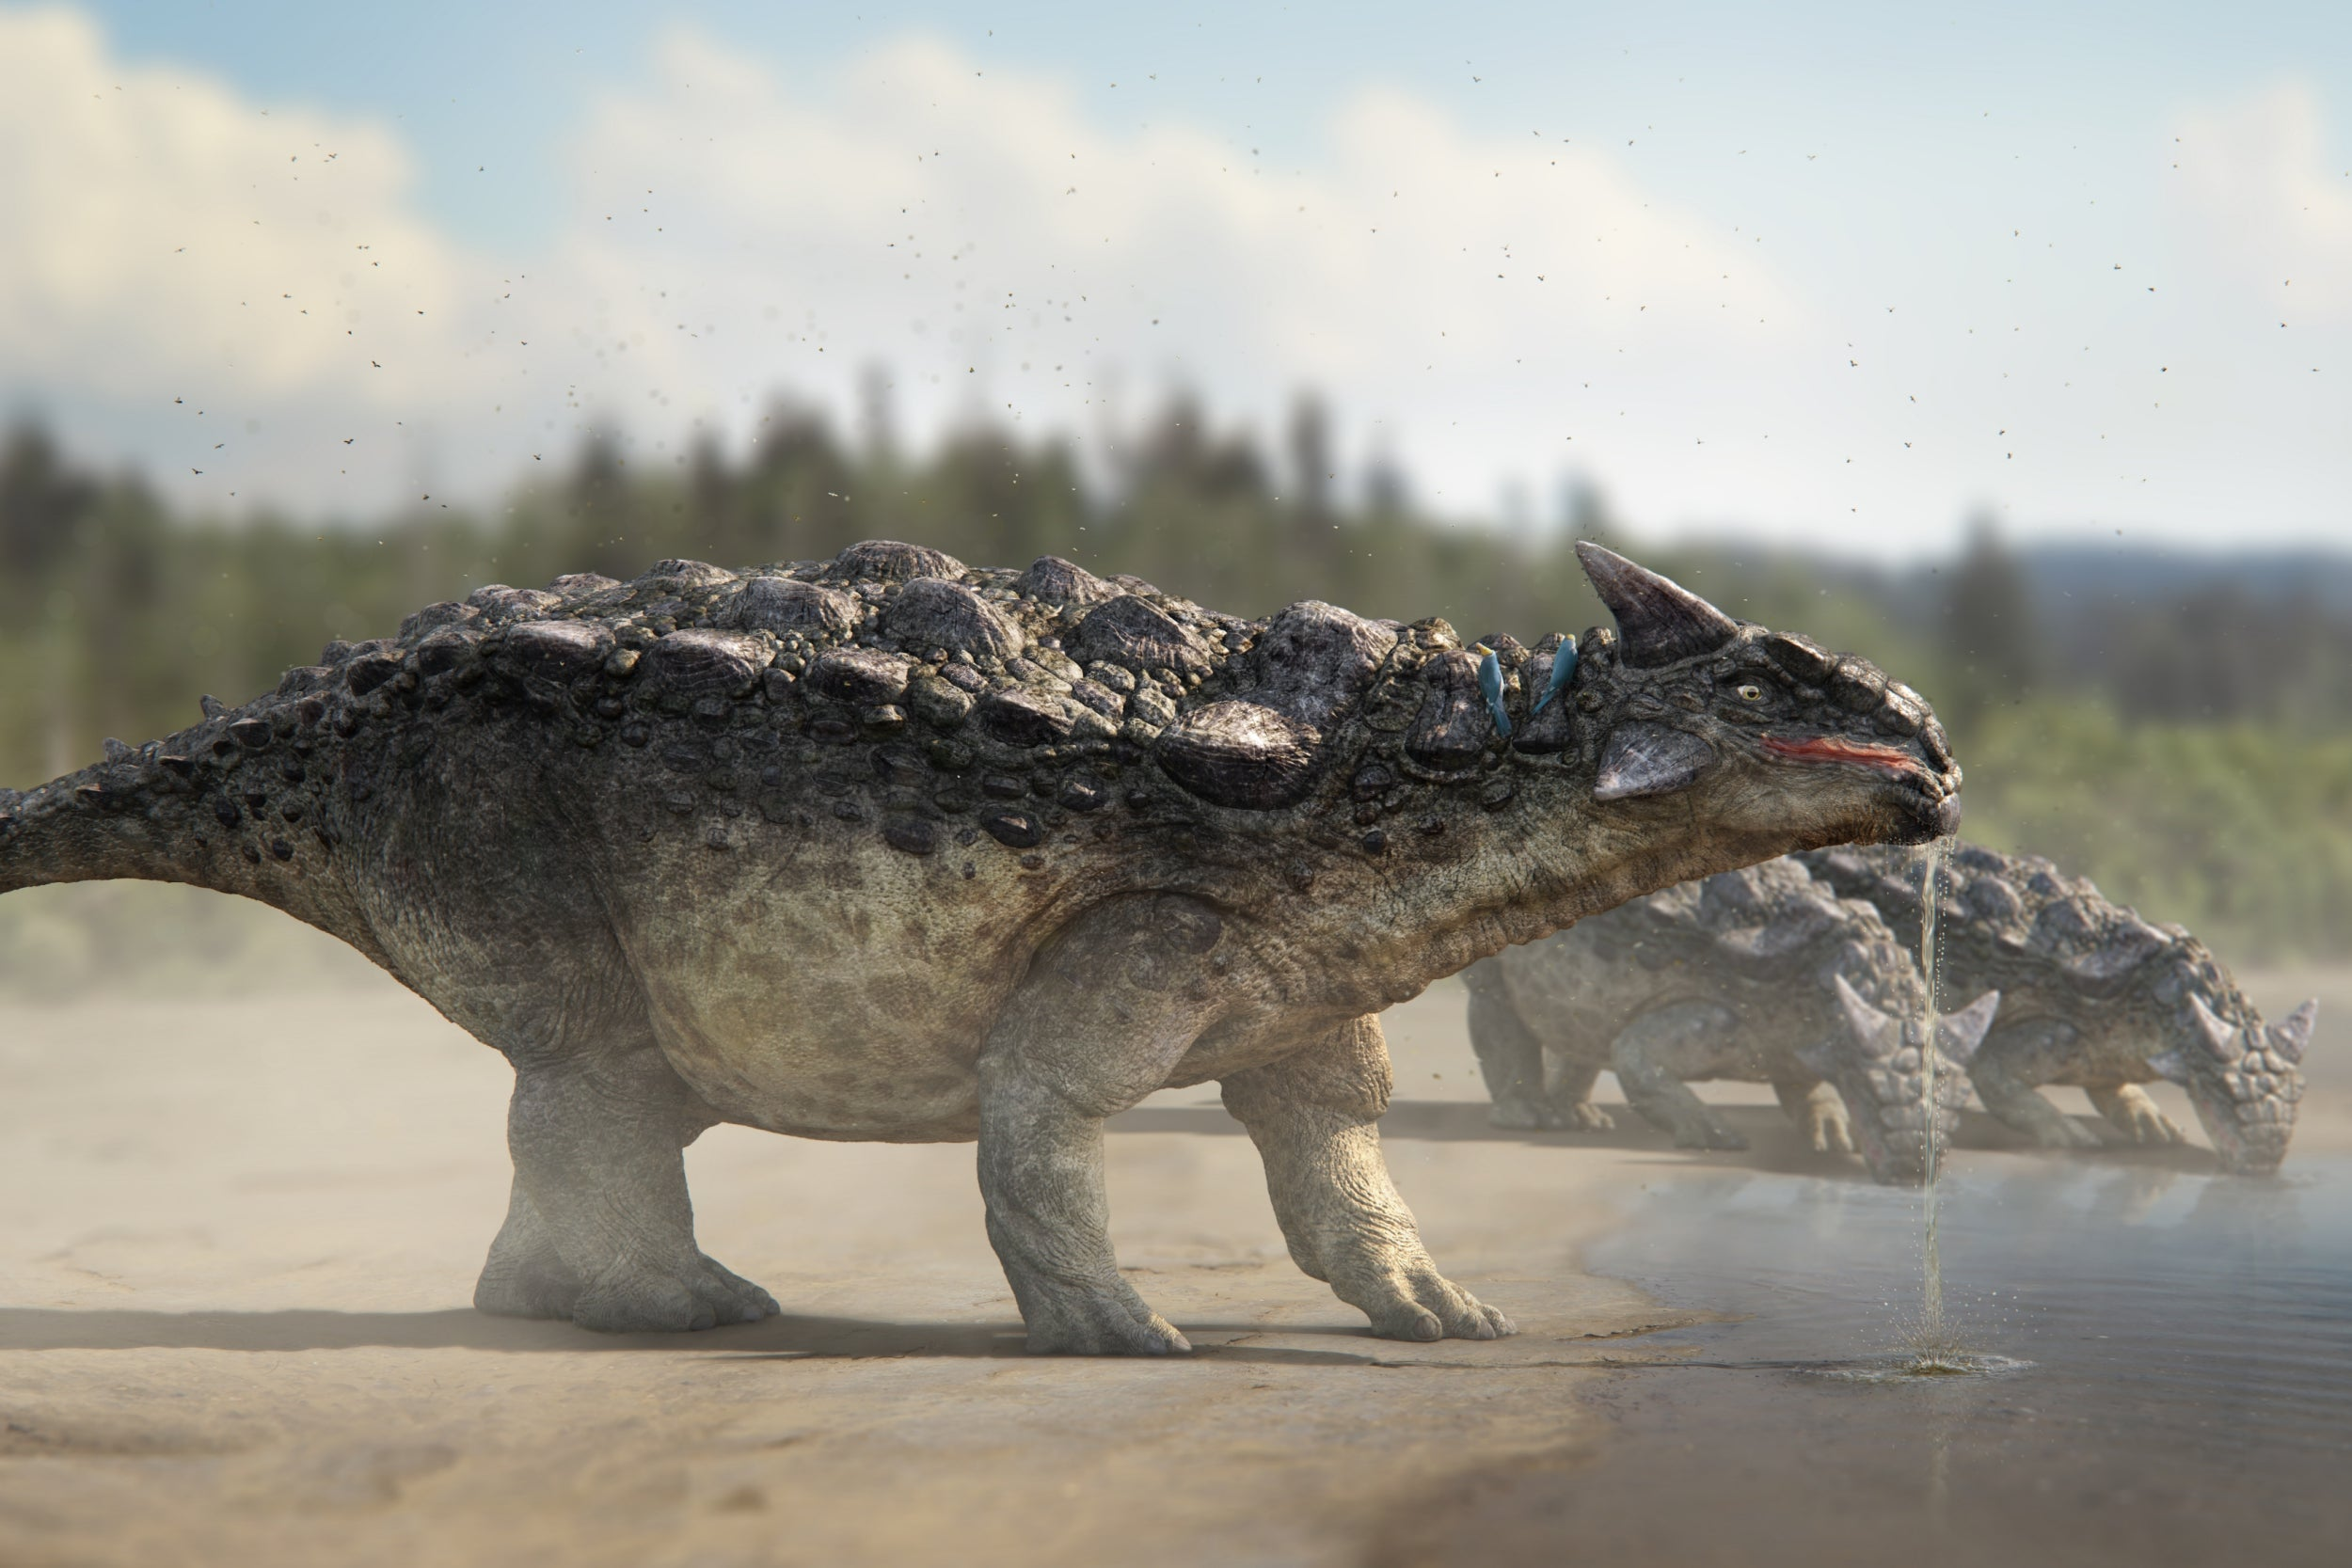 Fossil hunter tries to sell baby T-Rex skeleton on eBay for